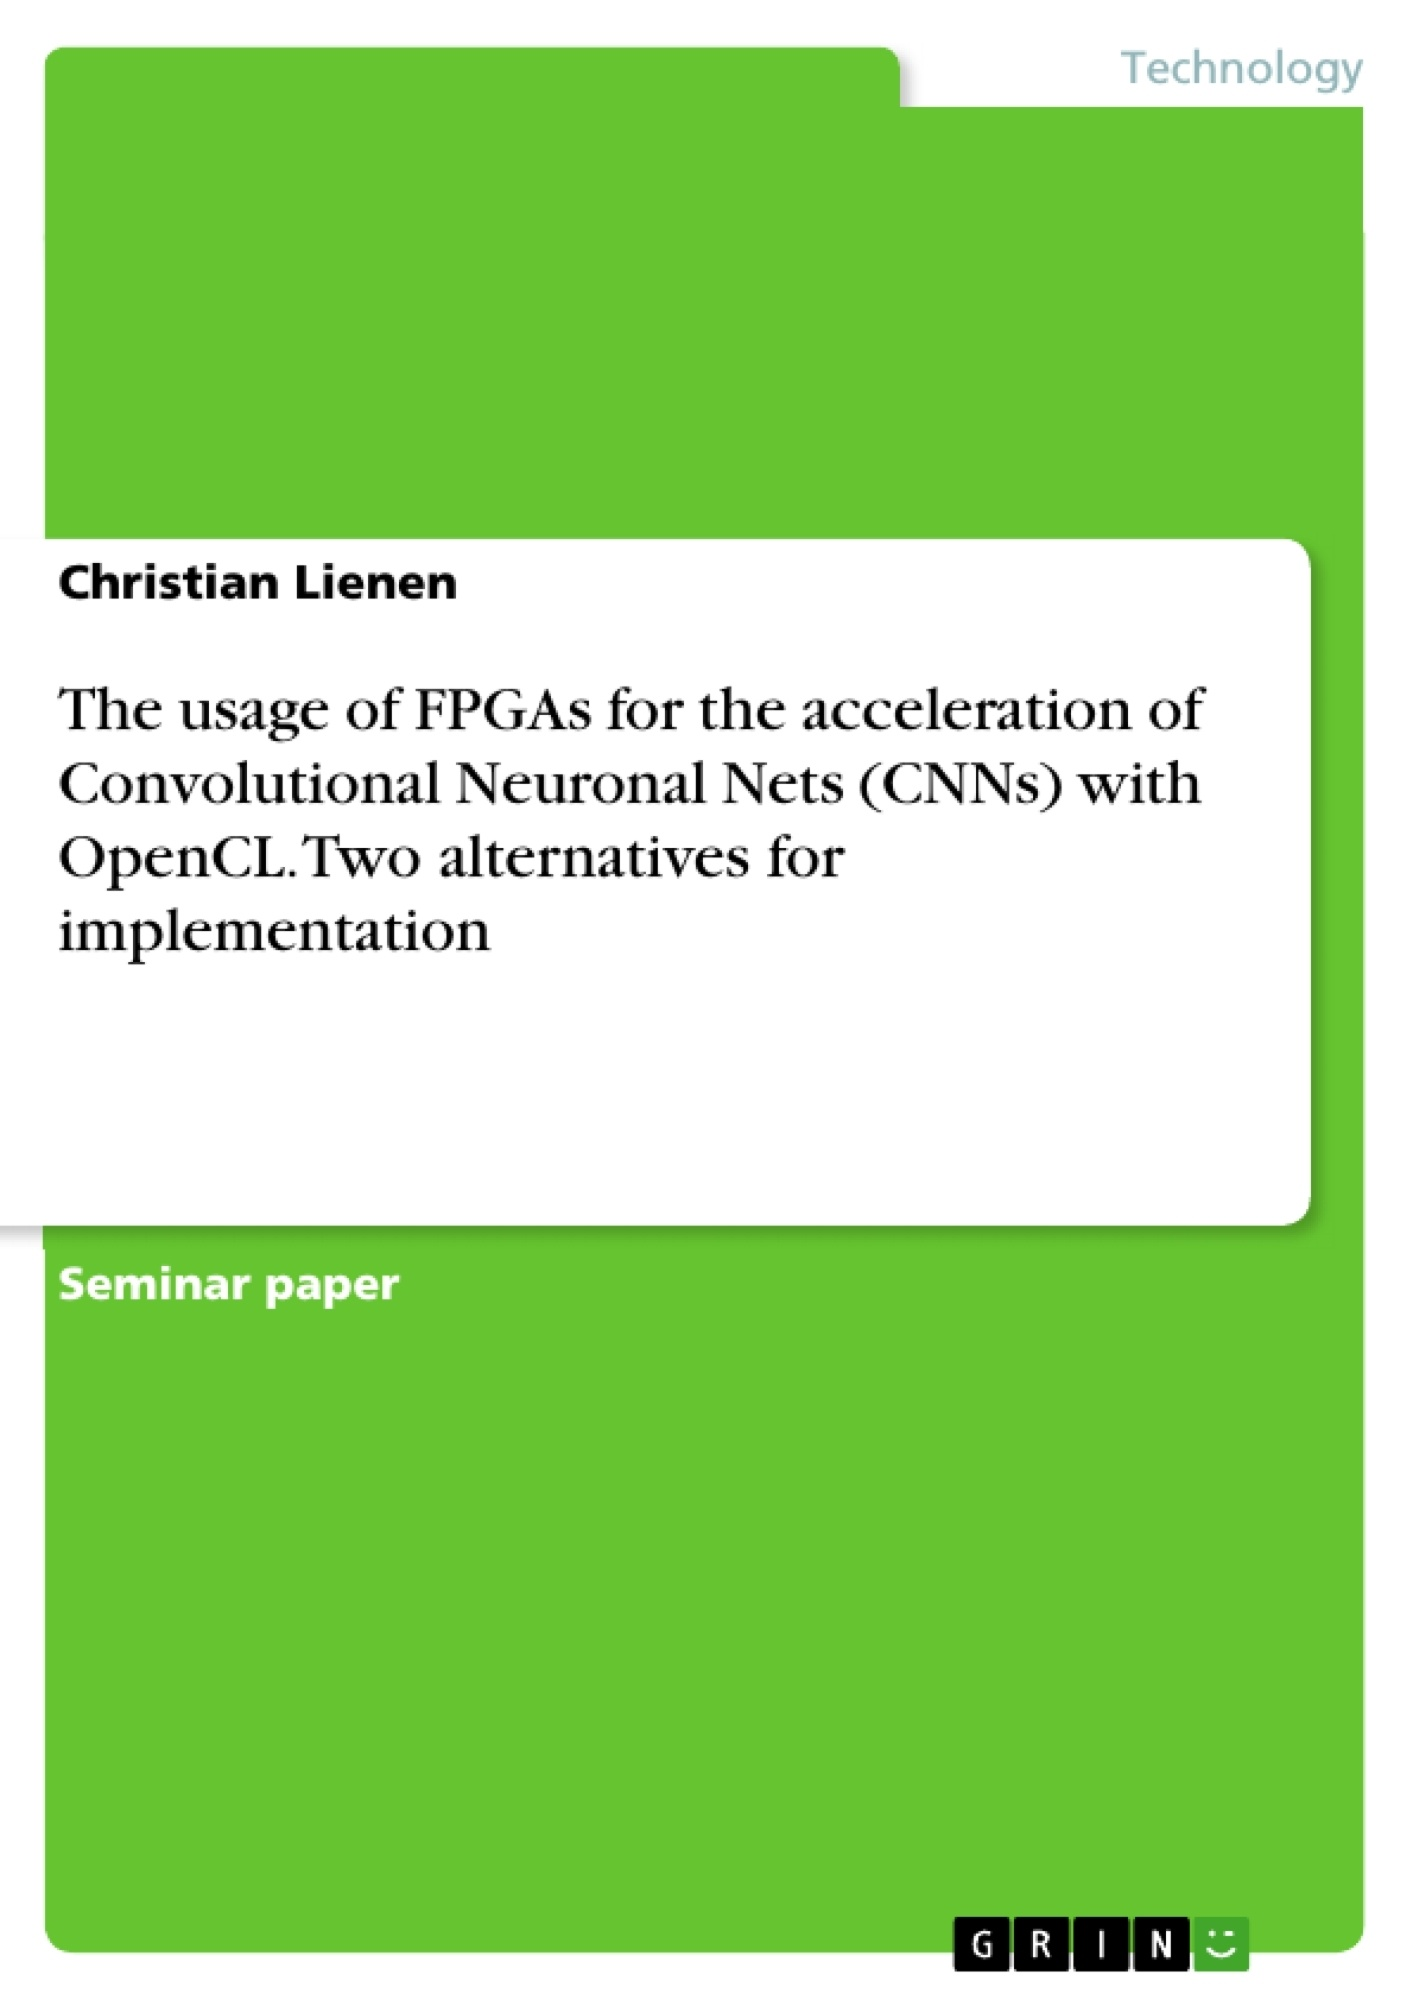 Title: The usage of FPGAs for the acceleration of Convolutional Neuronal Nets (CNNs) with OpenCL. Two alternatives for implementation